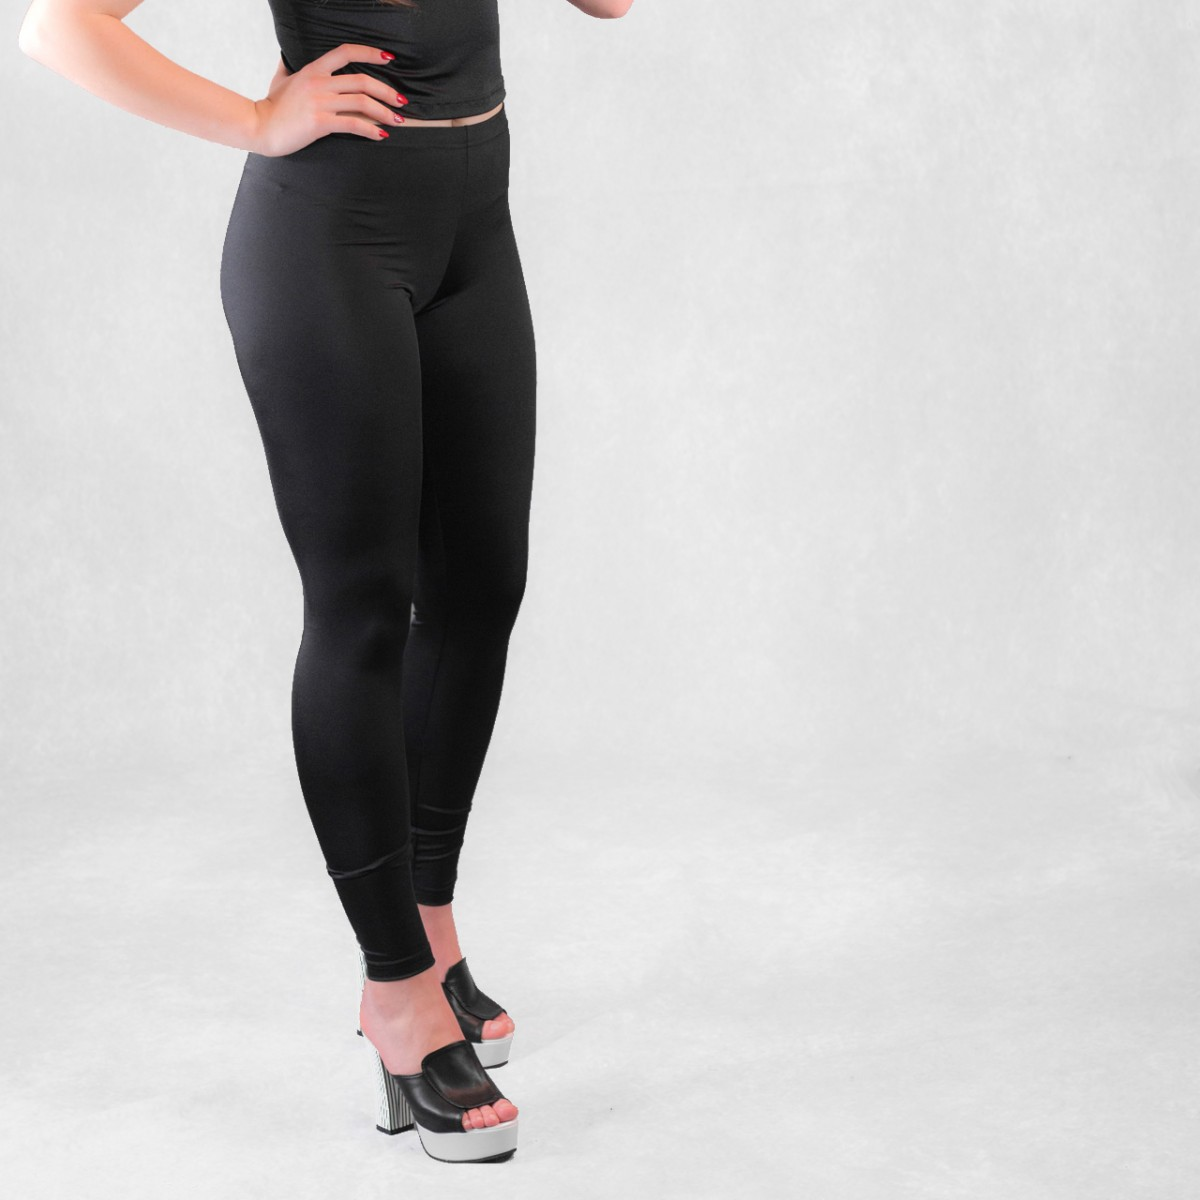 6cffa064b33e3 Shiny Leggings - Black Spandex Leggings